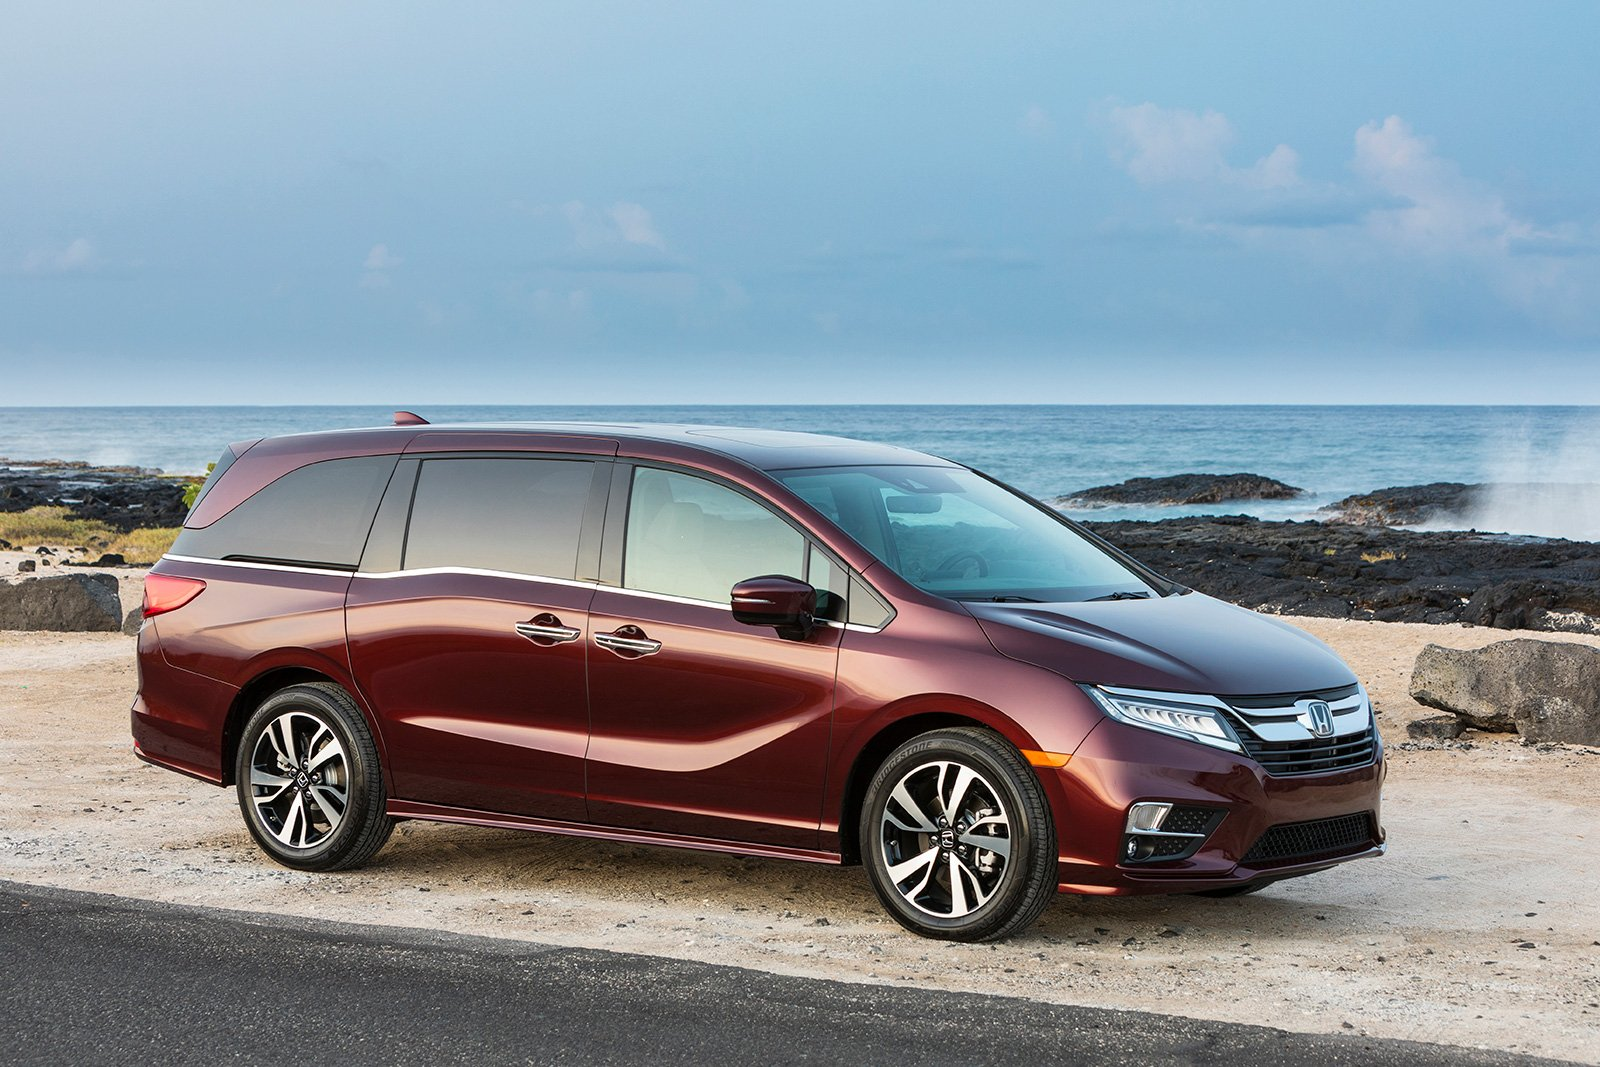 2019 Honda Odyssey Now On Sale In The US AutoGuide News